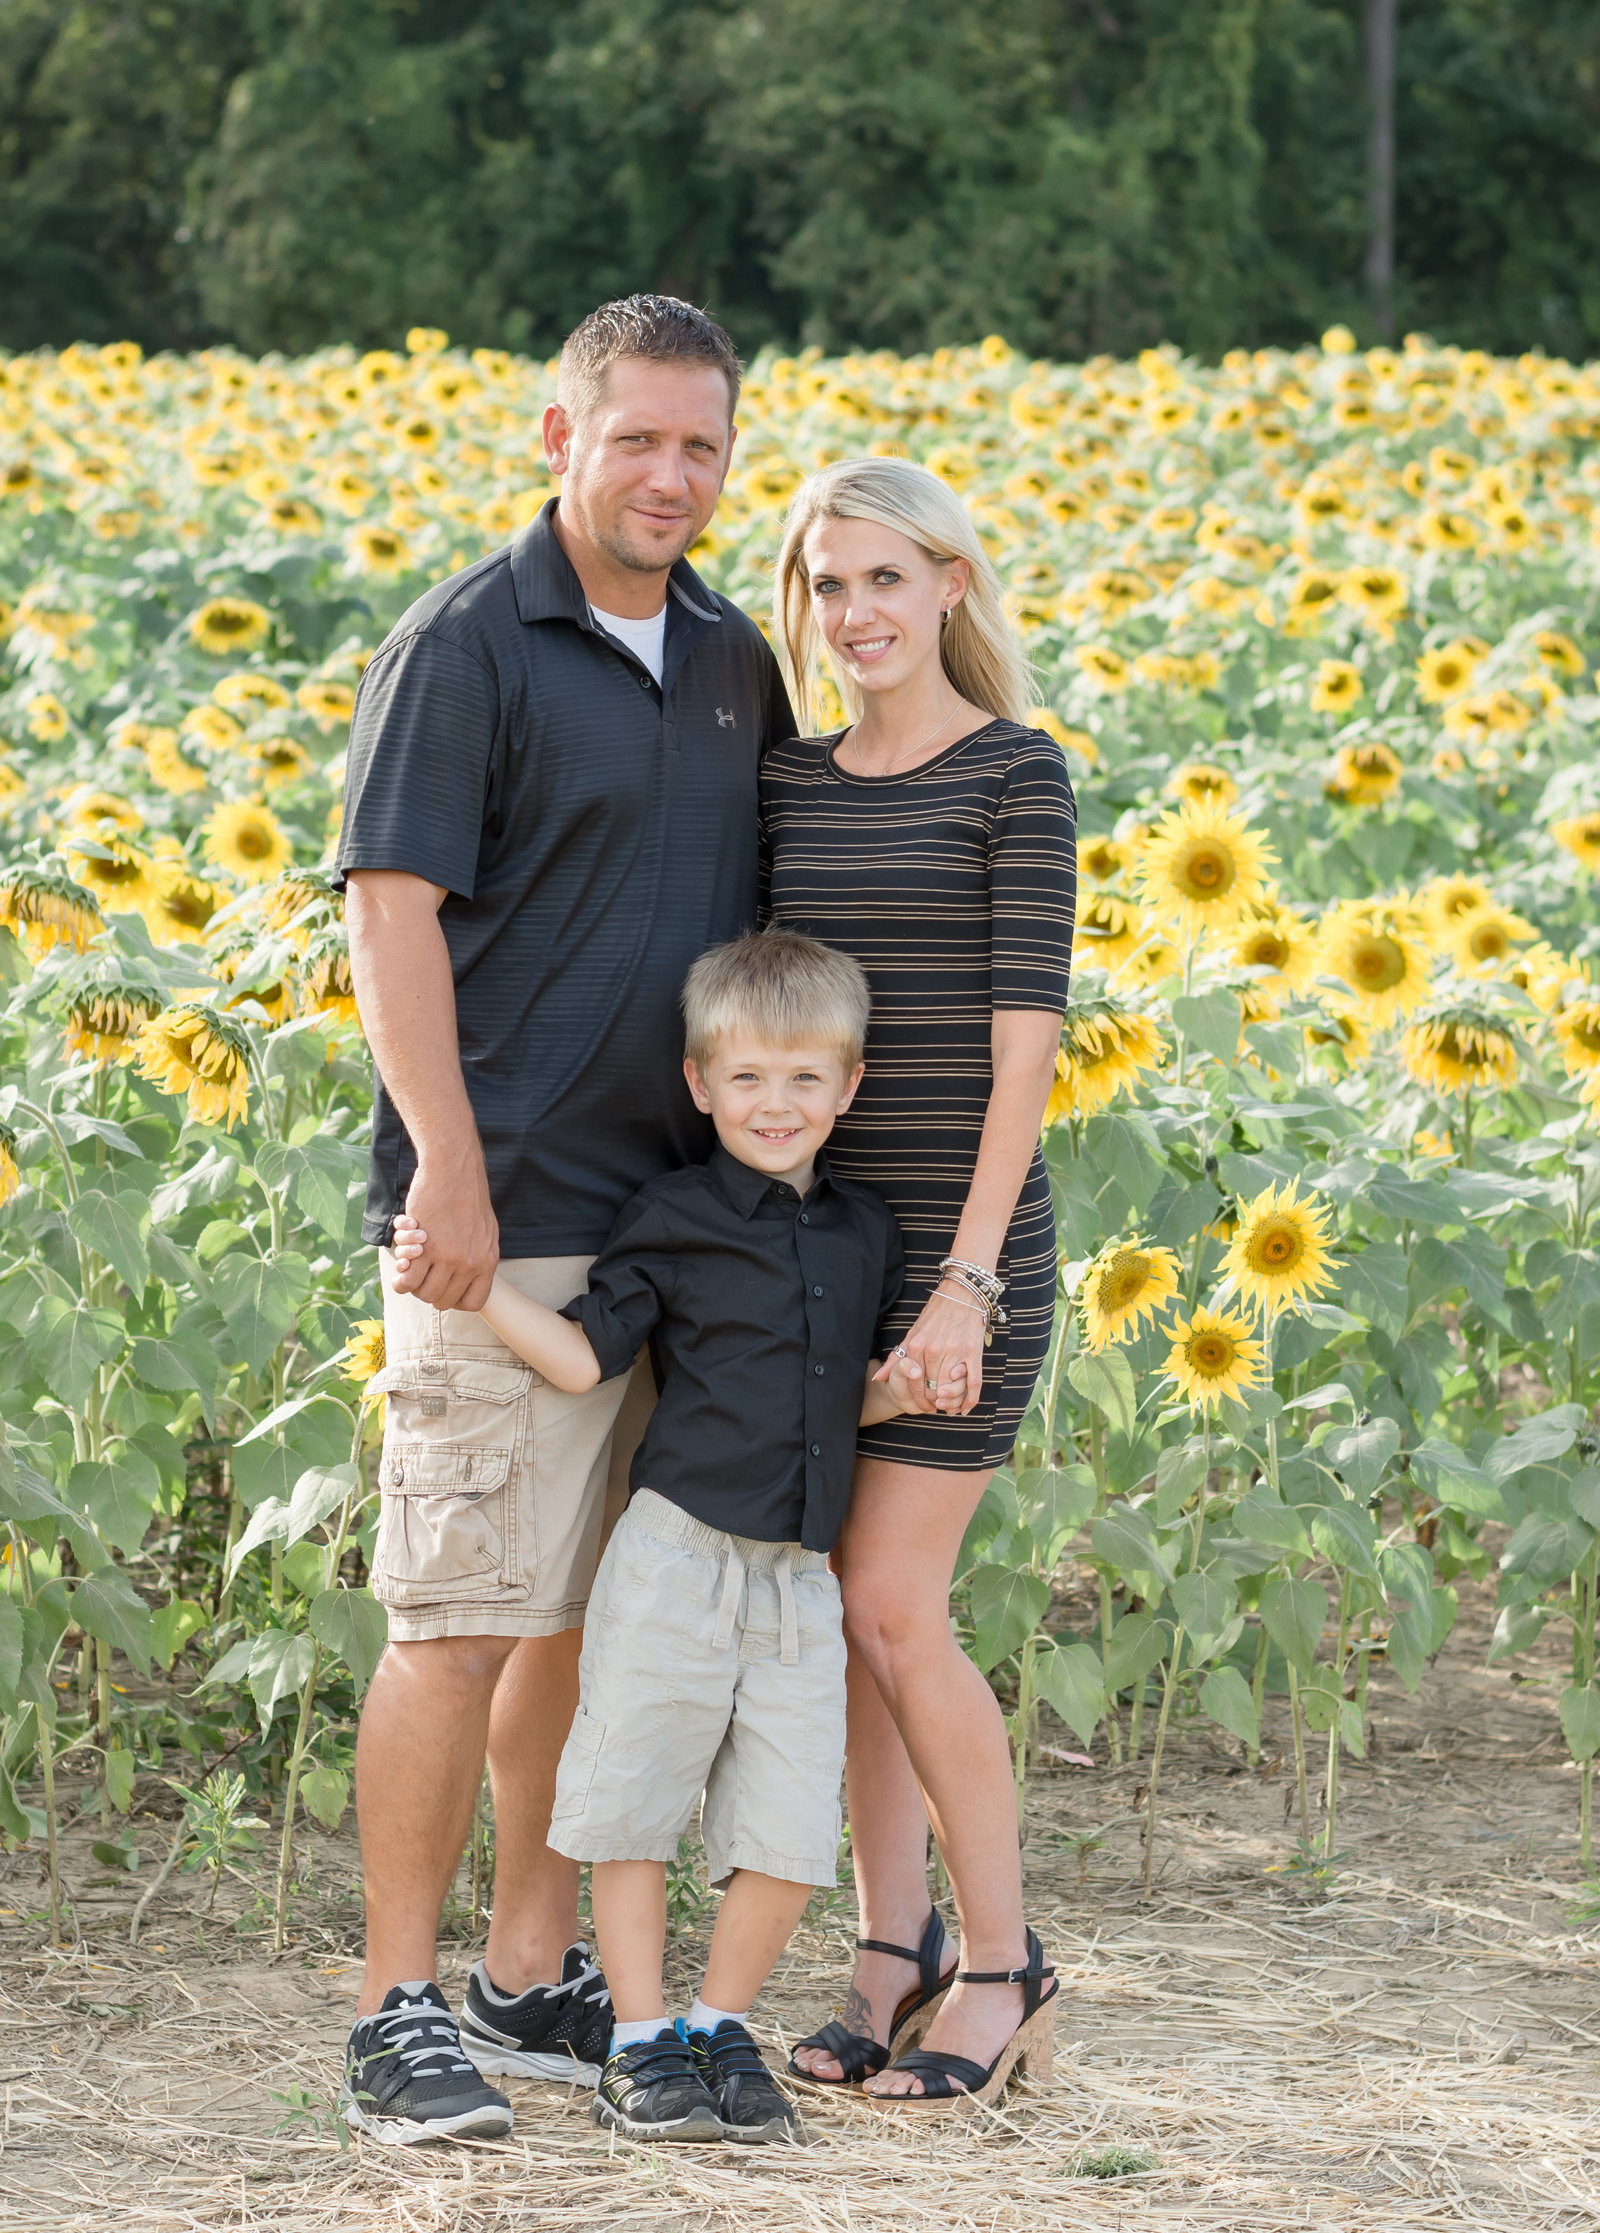 Rebecca, Scott, and Tyler at the Sunflower Field in Harford County, MD